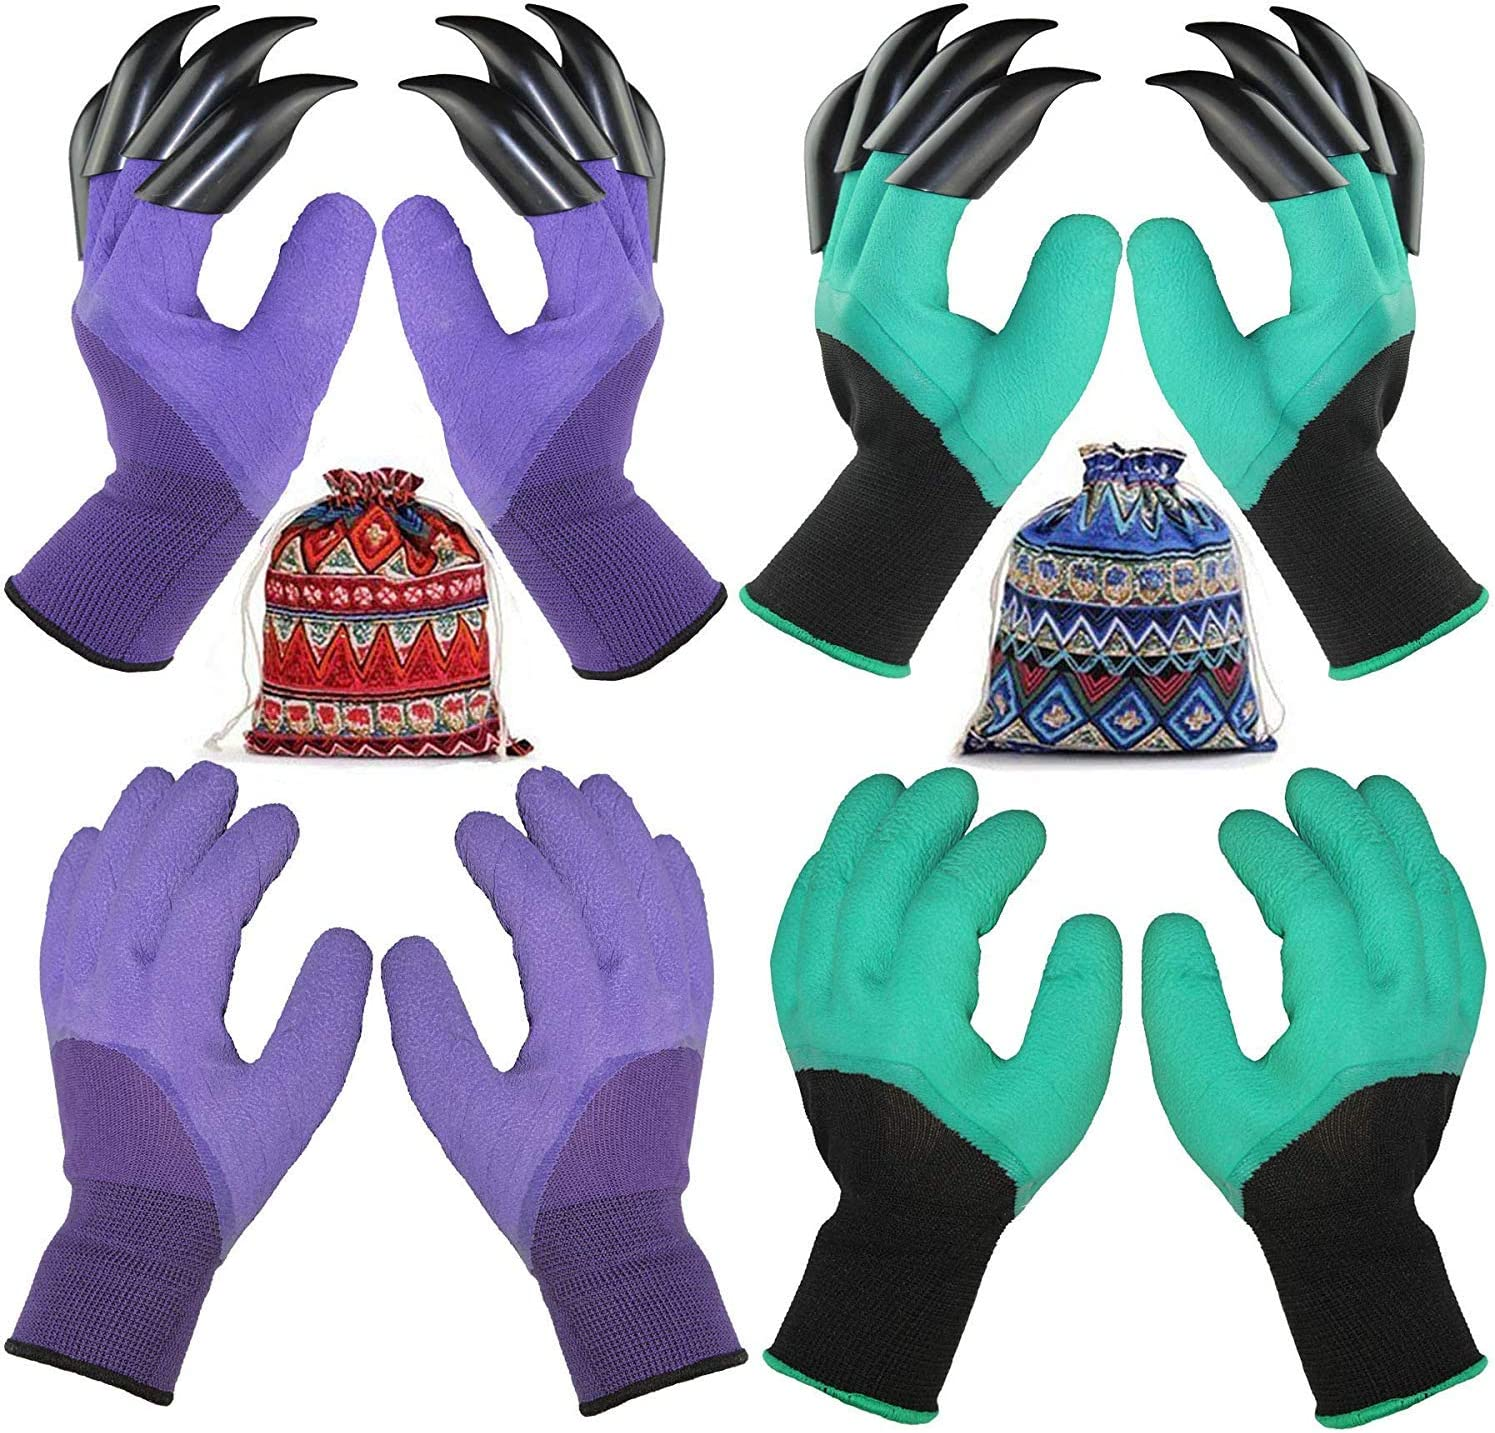 Outlet sale feature Mesa Mall 4 Pairs Garden Gloves With Best For Claws Gift Fingertips